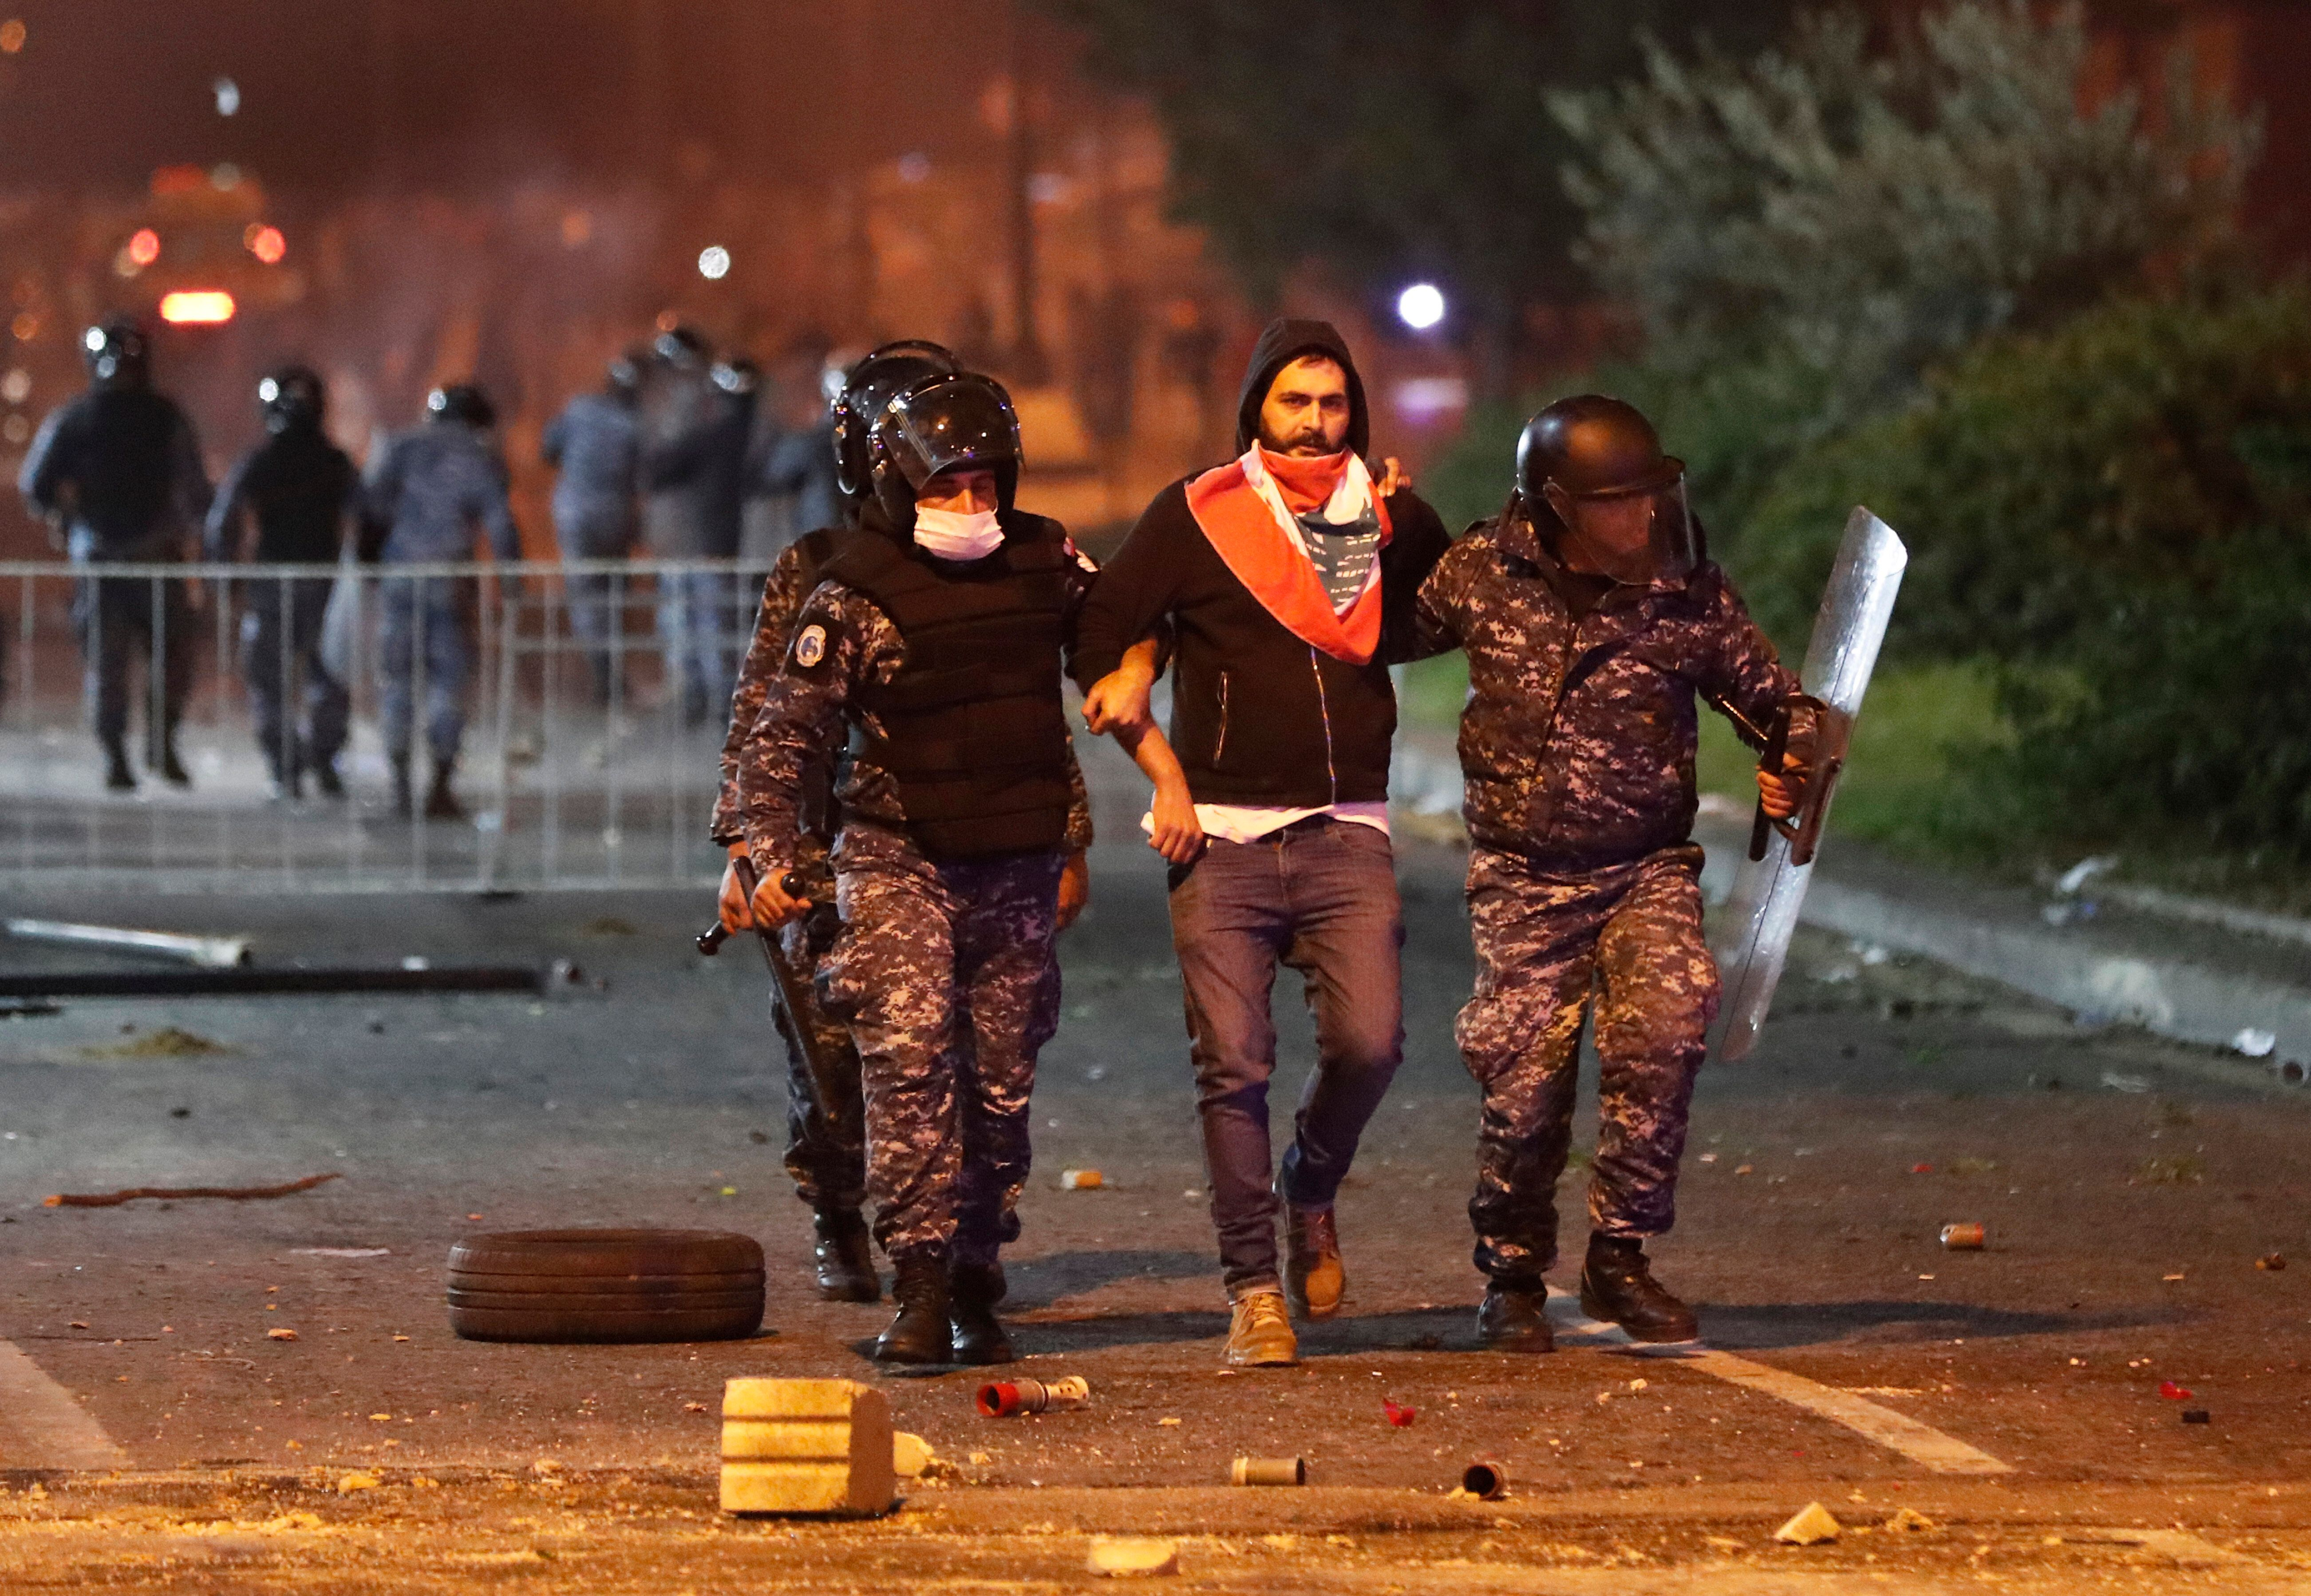 Lebanese Burn Ruling Parties' Offices After Night Of Violent Clashes